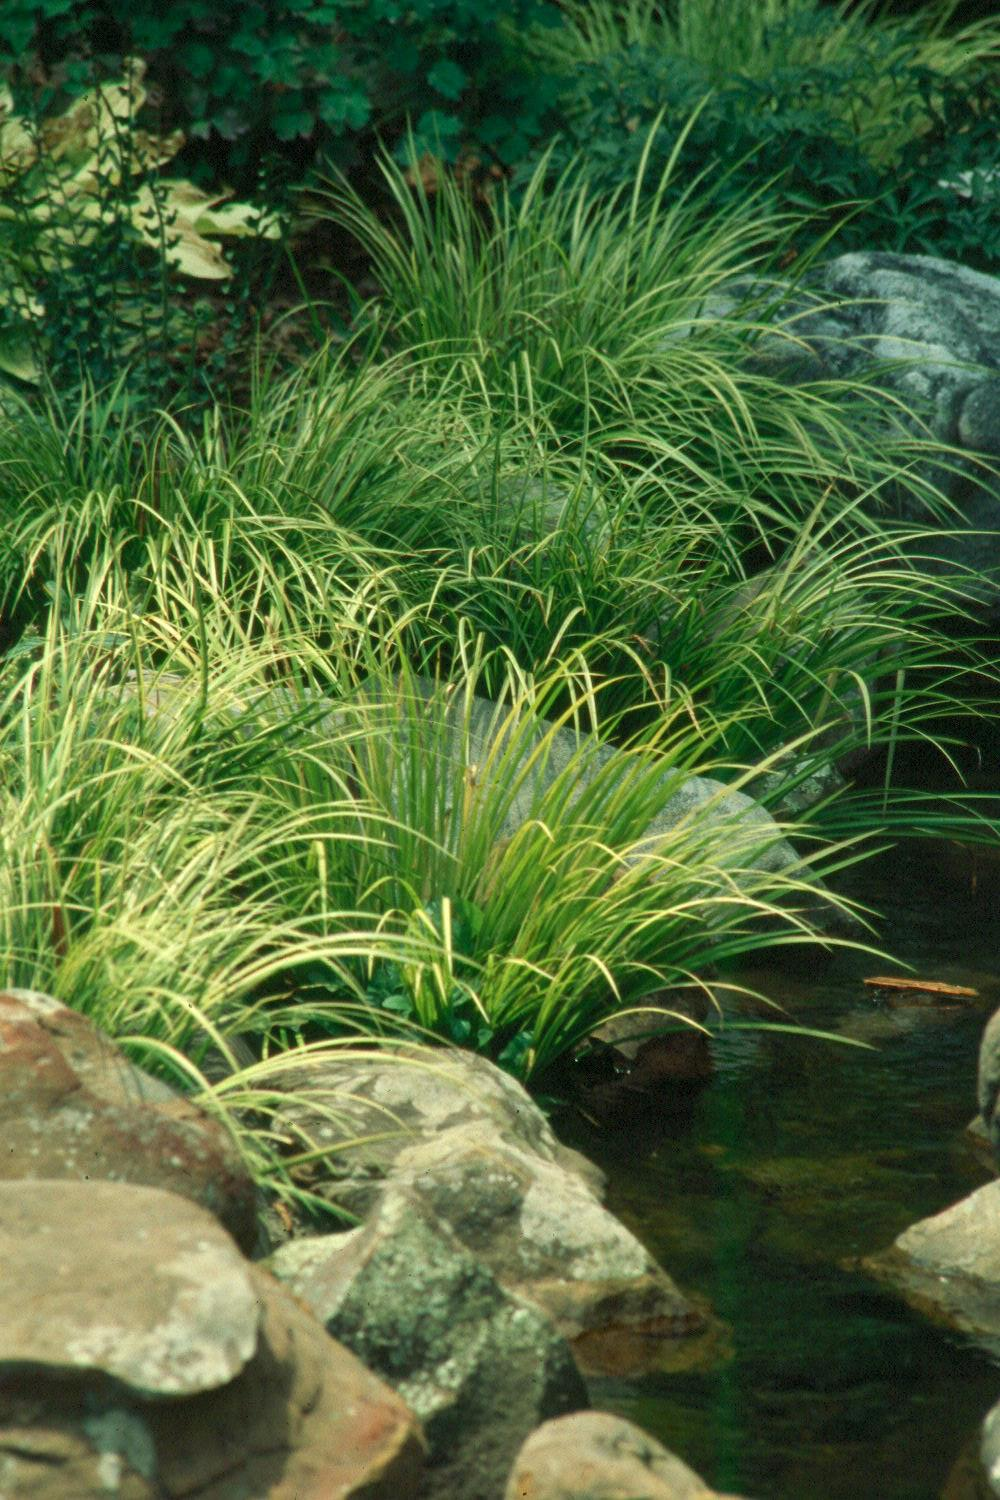 Ogon, a leading variety of Japanese sweet flag grasses, is outstanding with its golden color combined with green variegation.